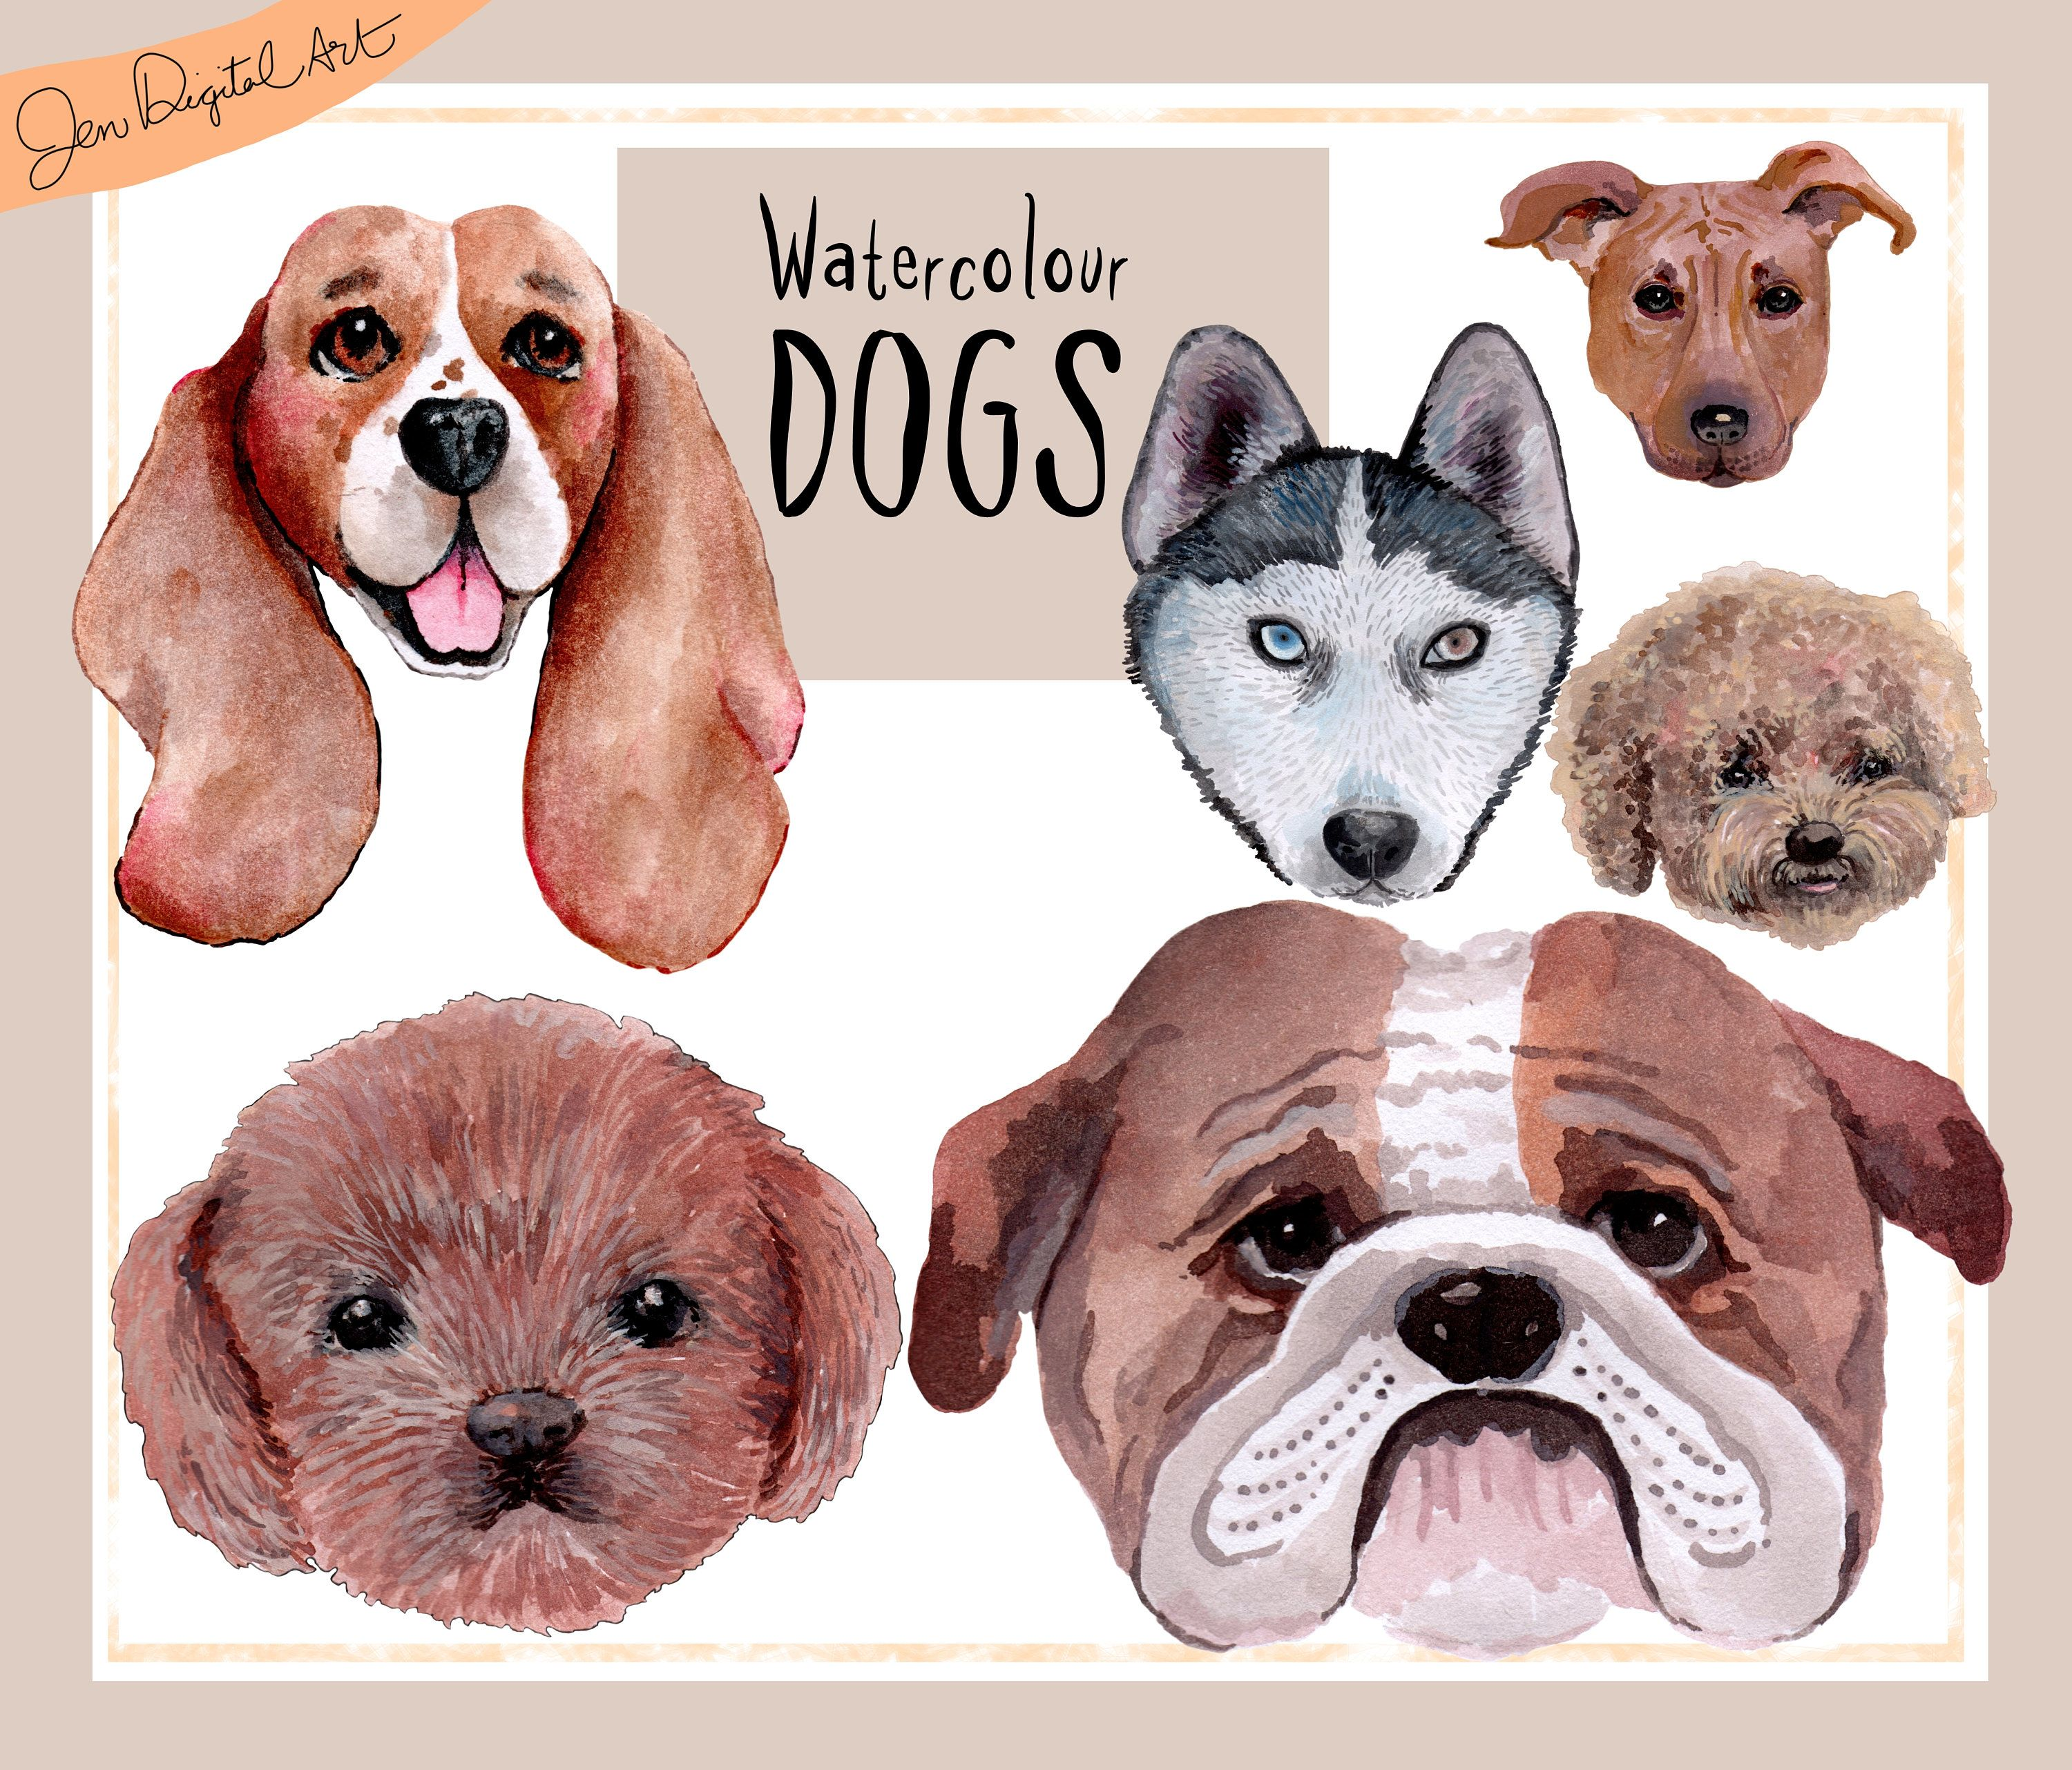 Hand painted uwatercolor dogsu pngjpeg digital images graphic